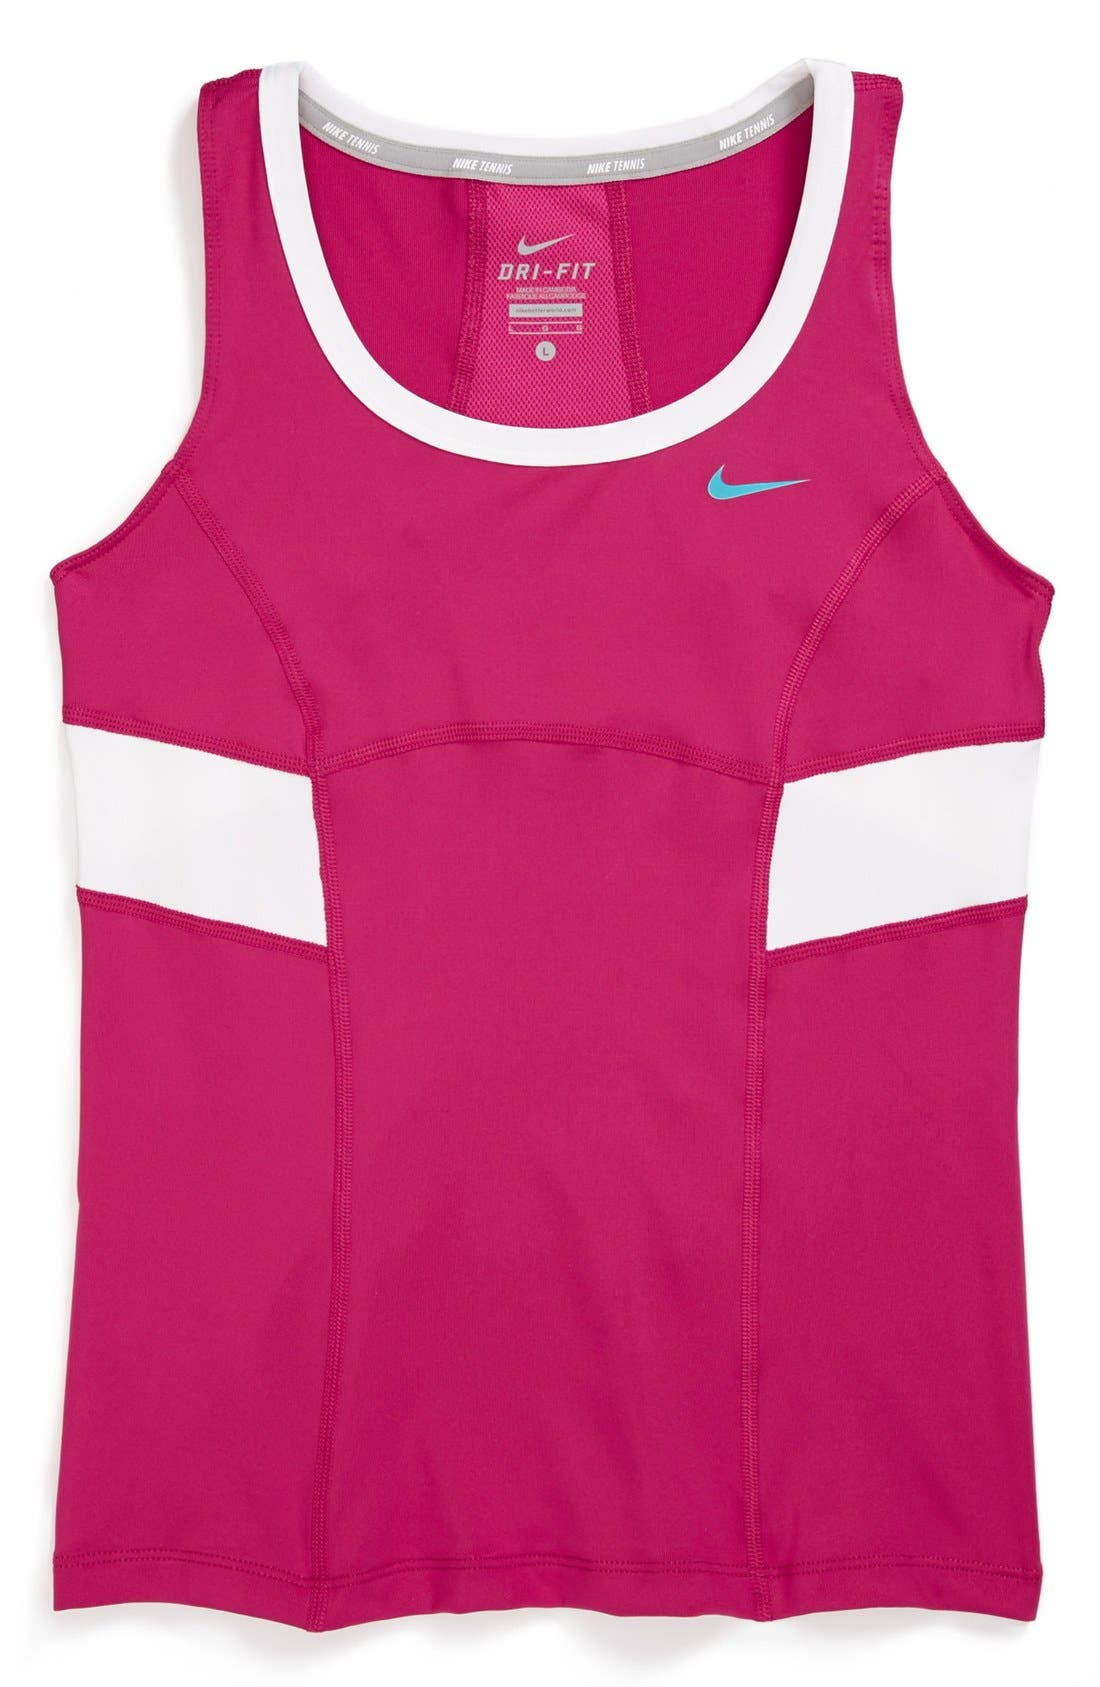 Main Image - Nike 'Power' Tennis Tank Top (Big Girls)